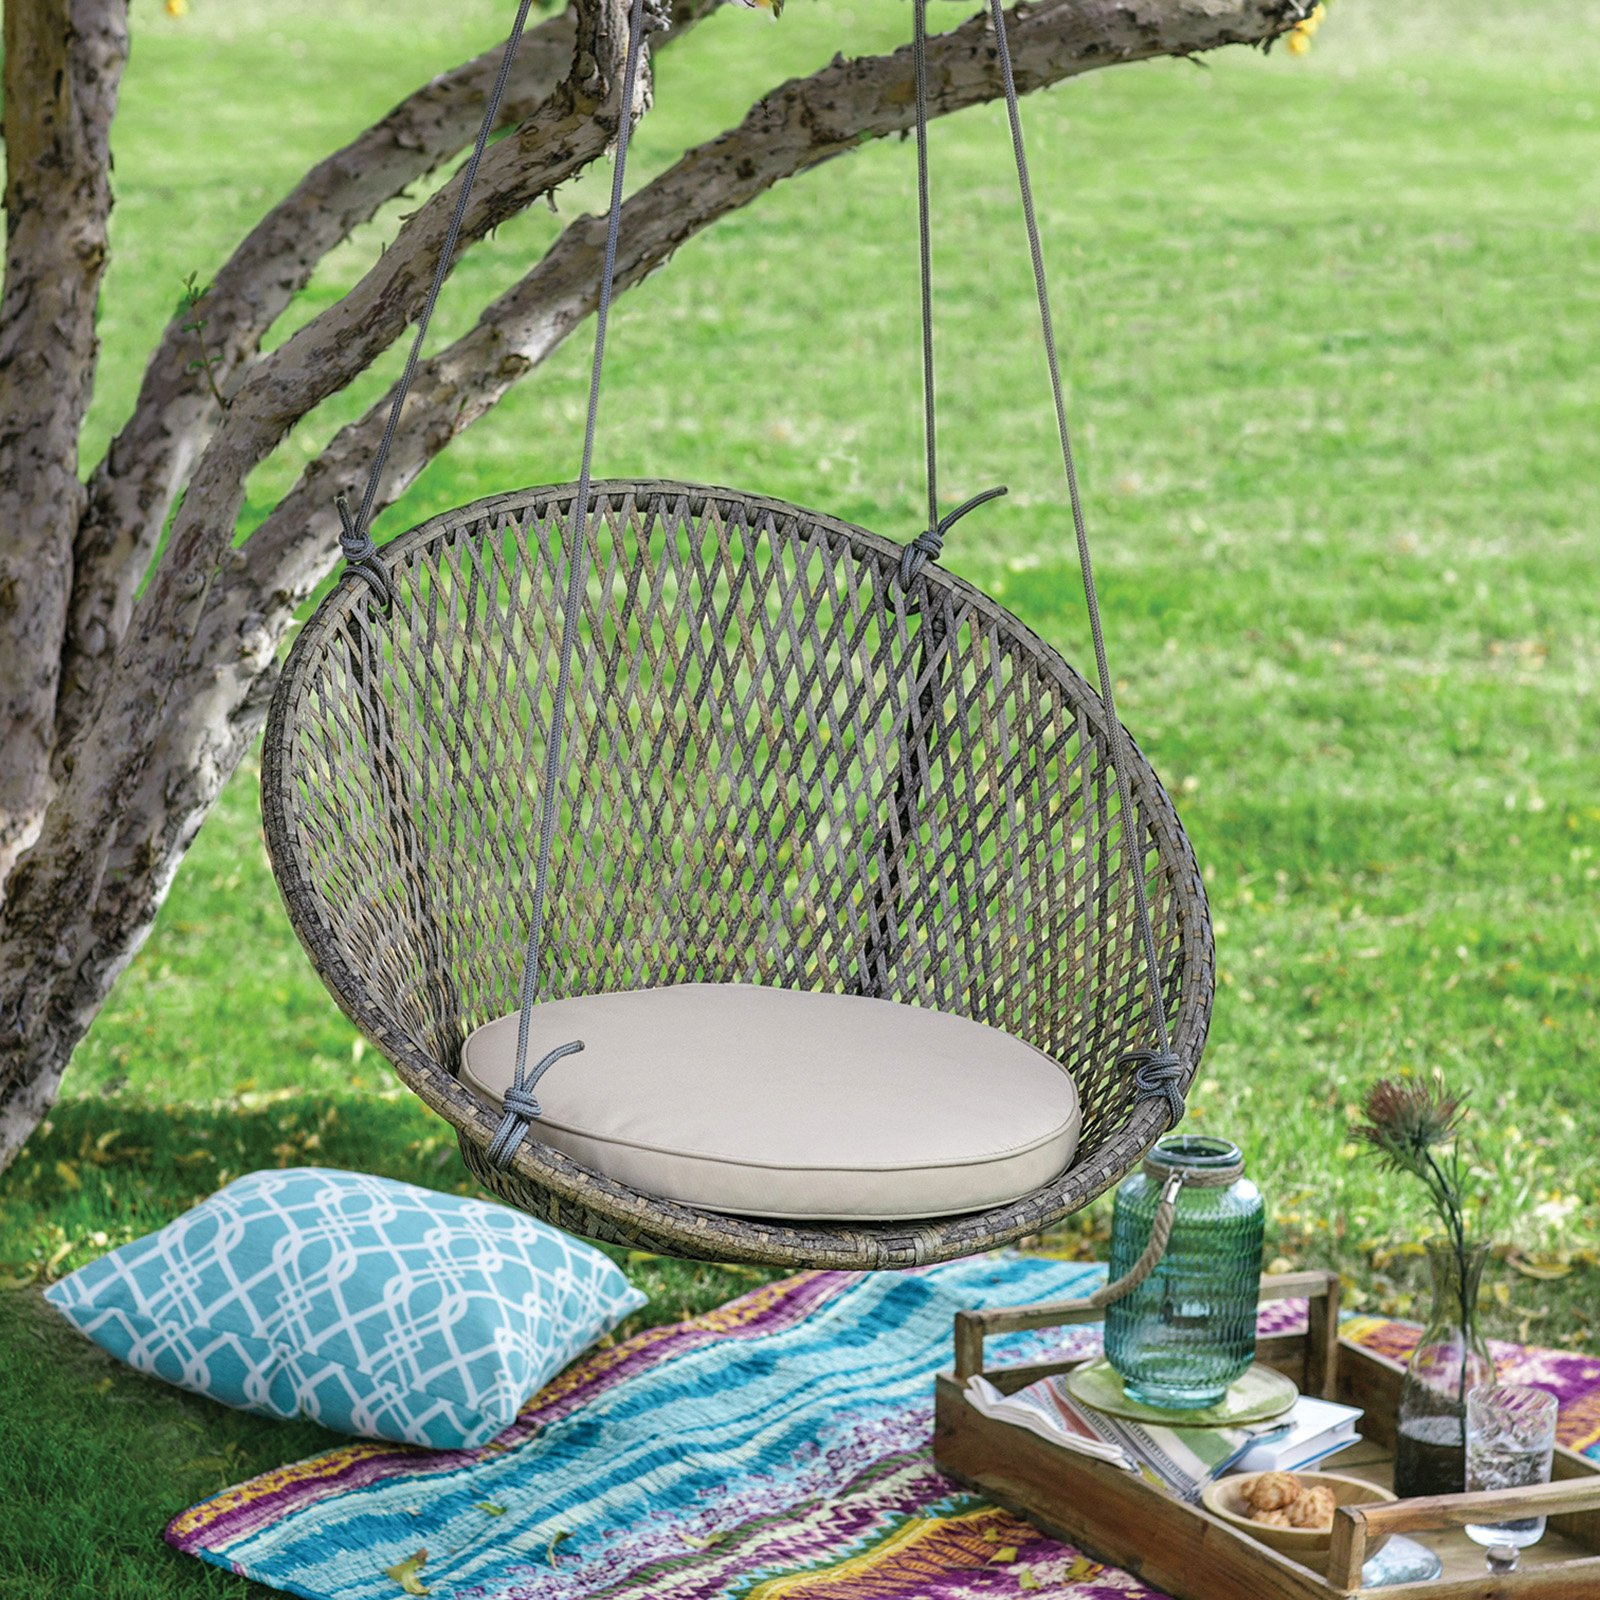 Genial Product Image Belham Living Saria Resin Wicker Single Hanging Swing Chair  With Seat Pad